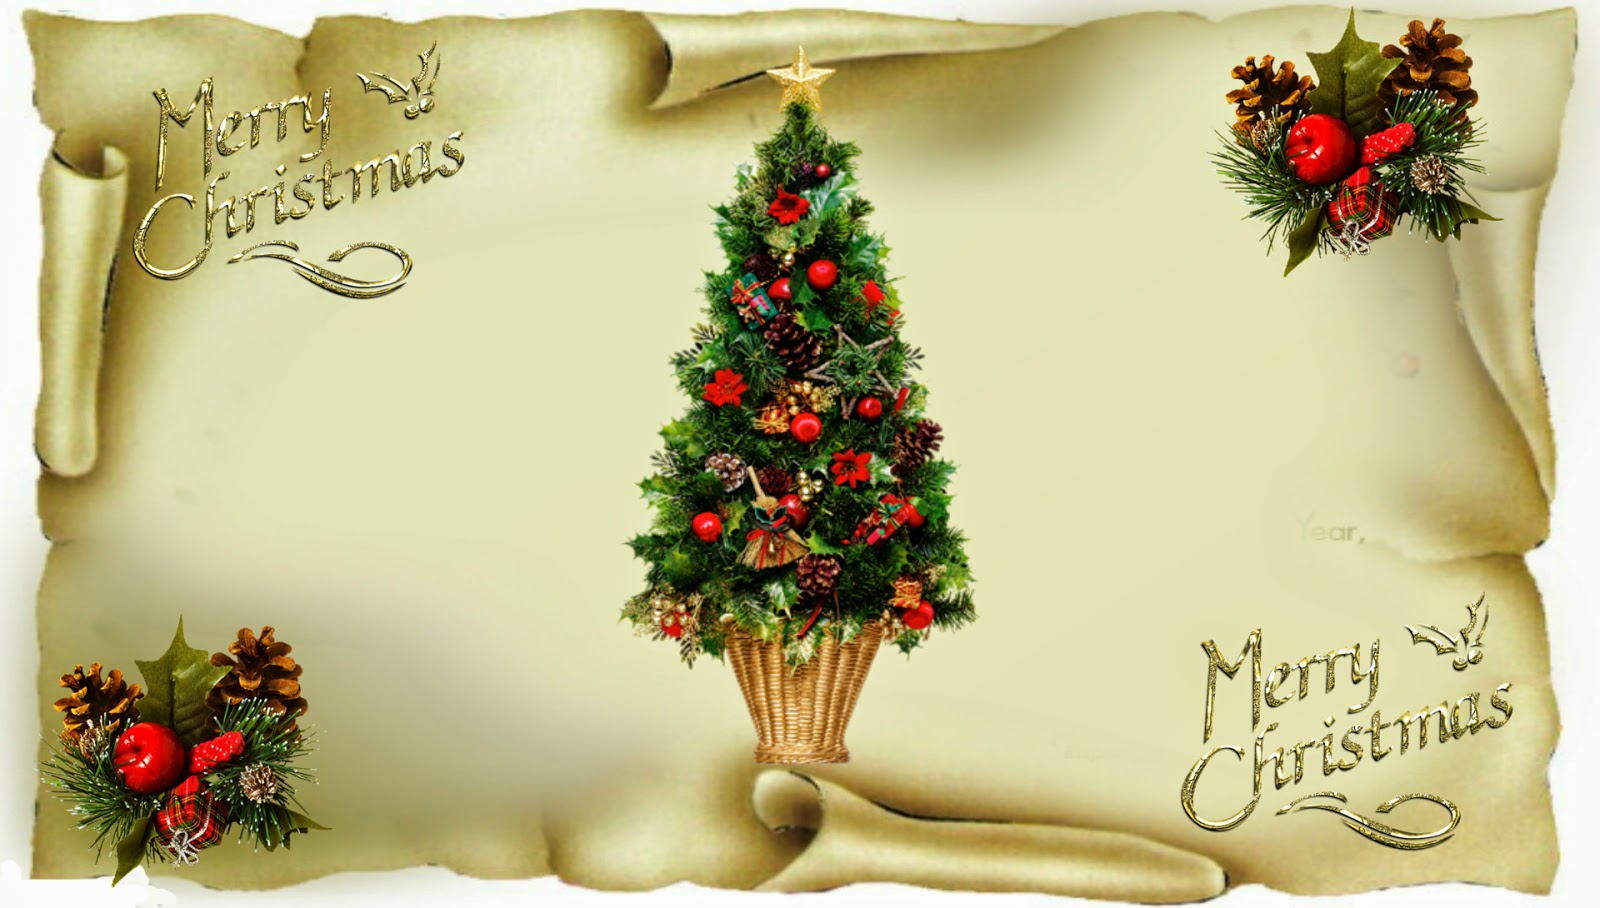 Christmas-Greetings-card-with-xmas-tree-1920x1090-image-picture.jpg